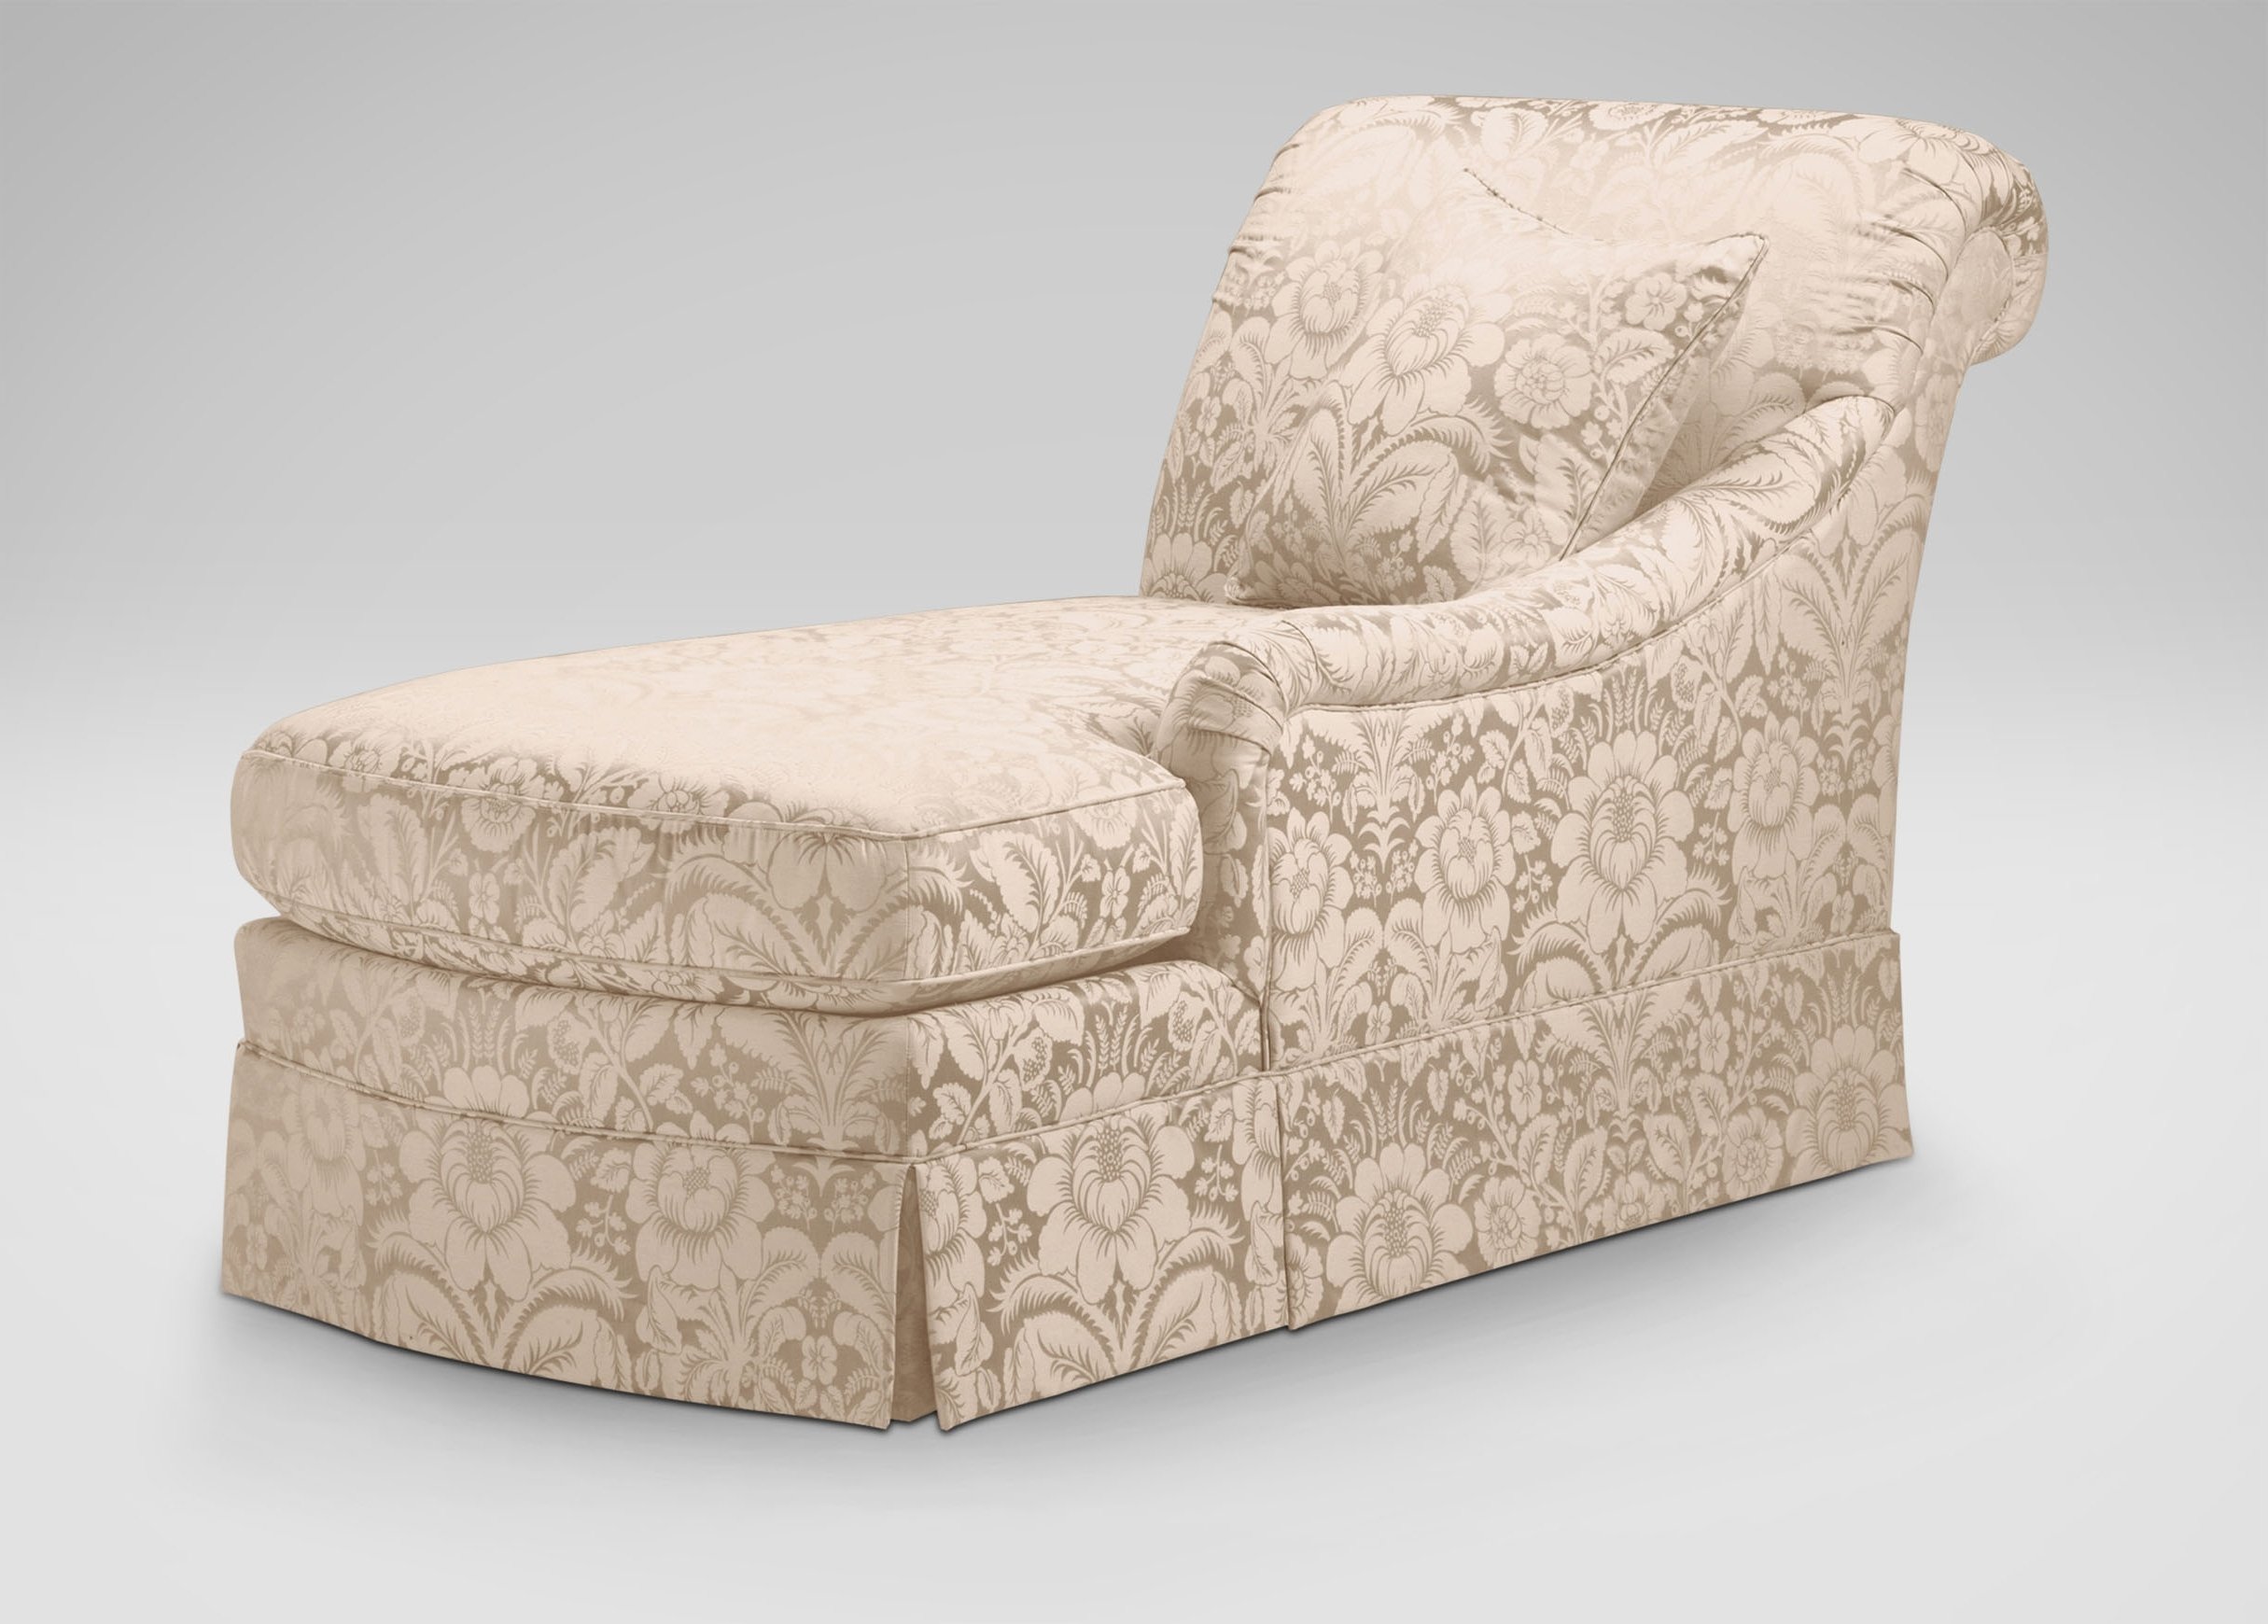 Most Up To Date Chaise Lounge Slipcovers – Slipcovers For Chaise Lounge Chairs Throughout Indoor Chaise Lounge Slipcovers (View 13 of 15)